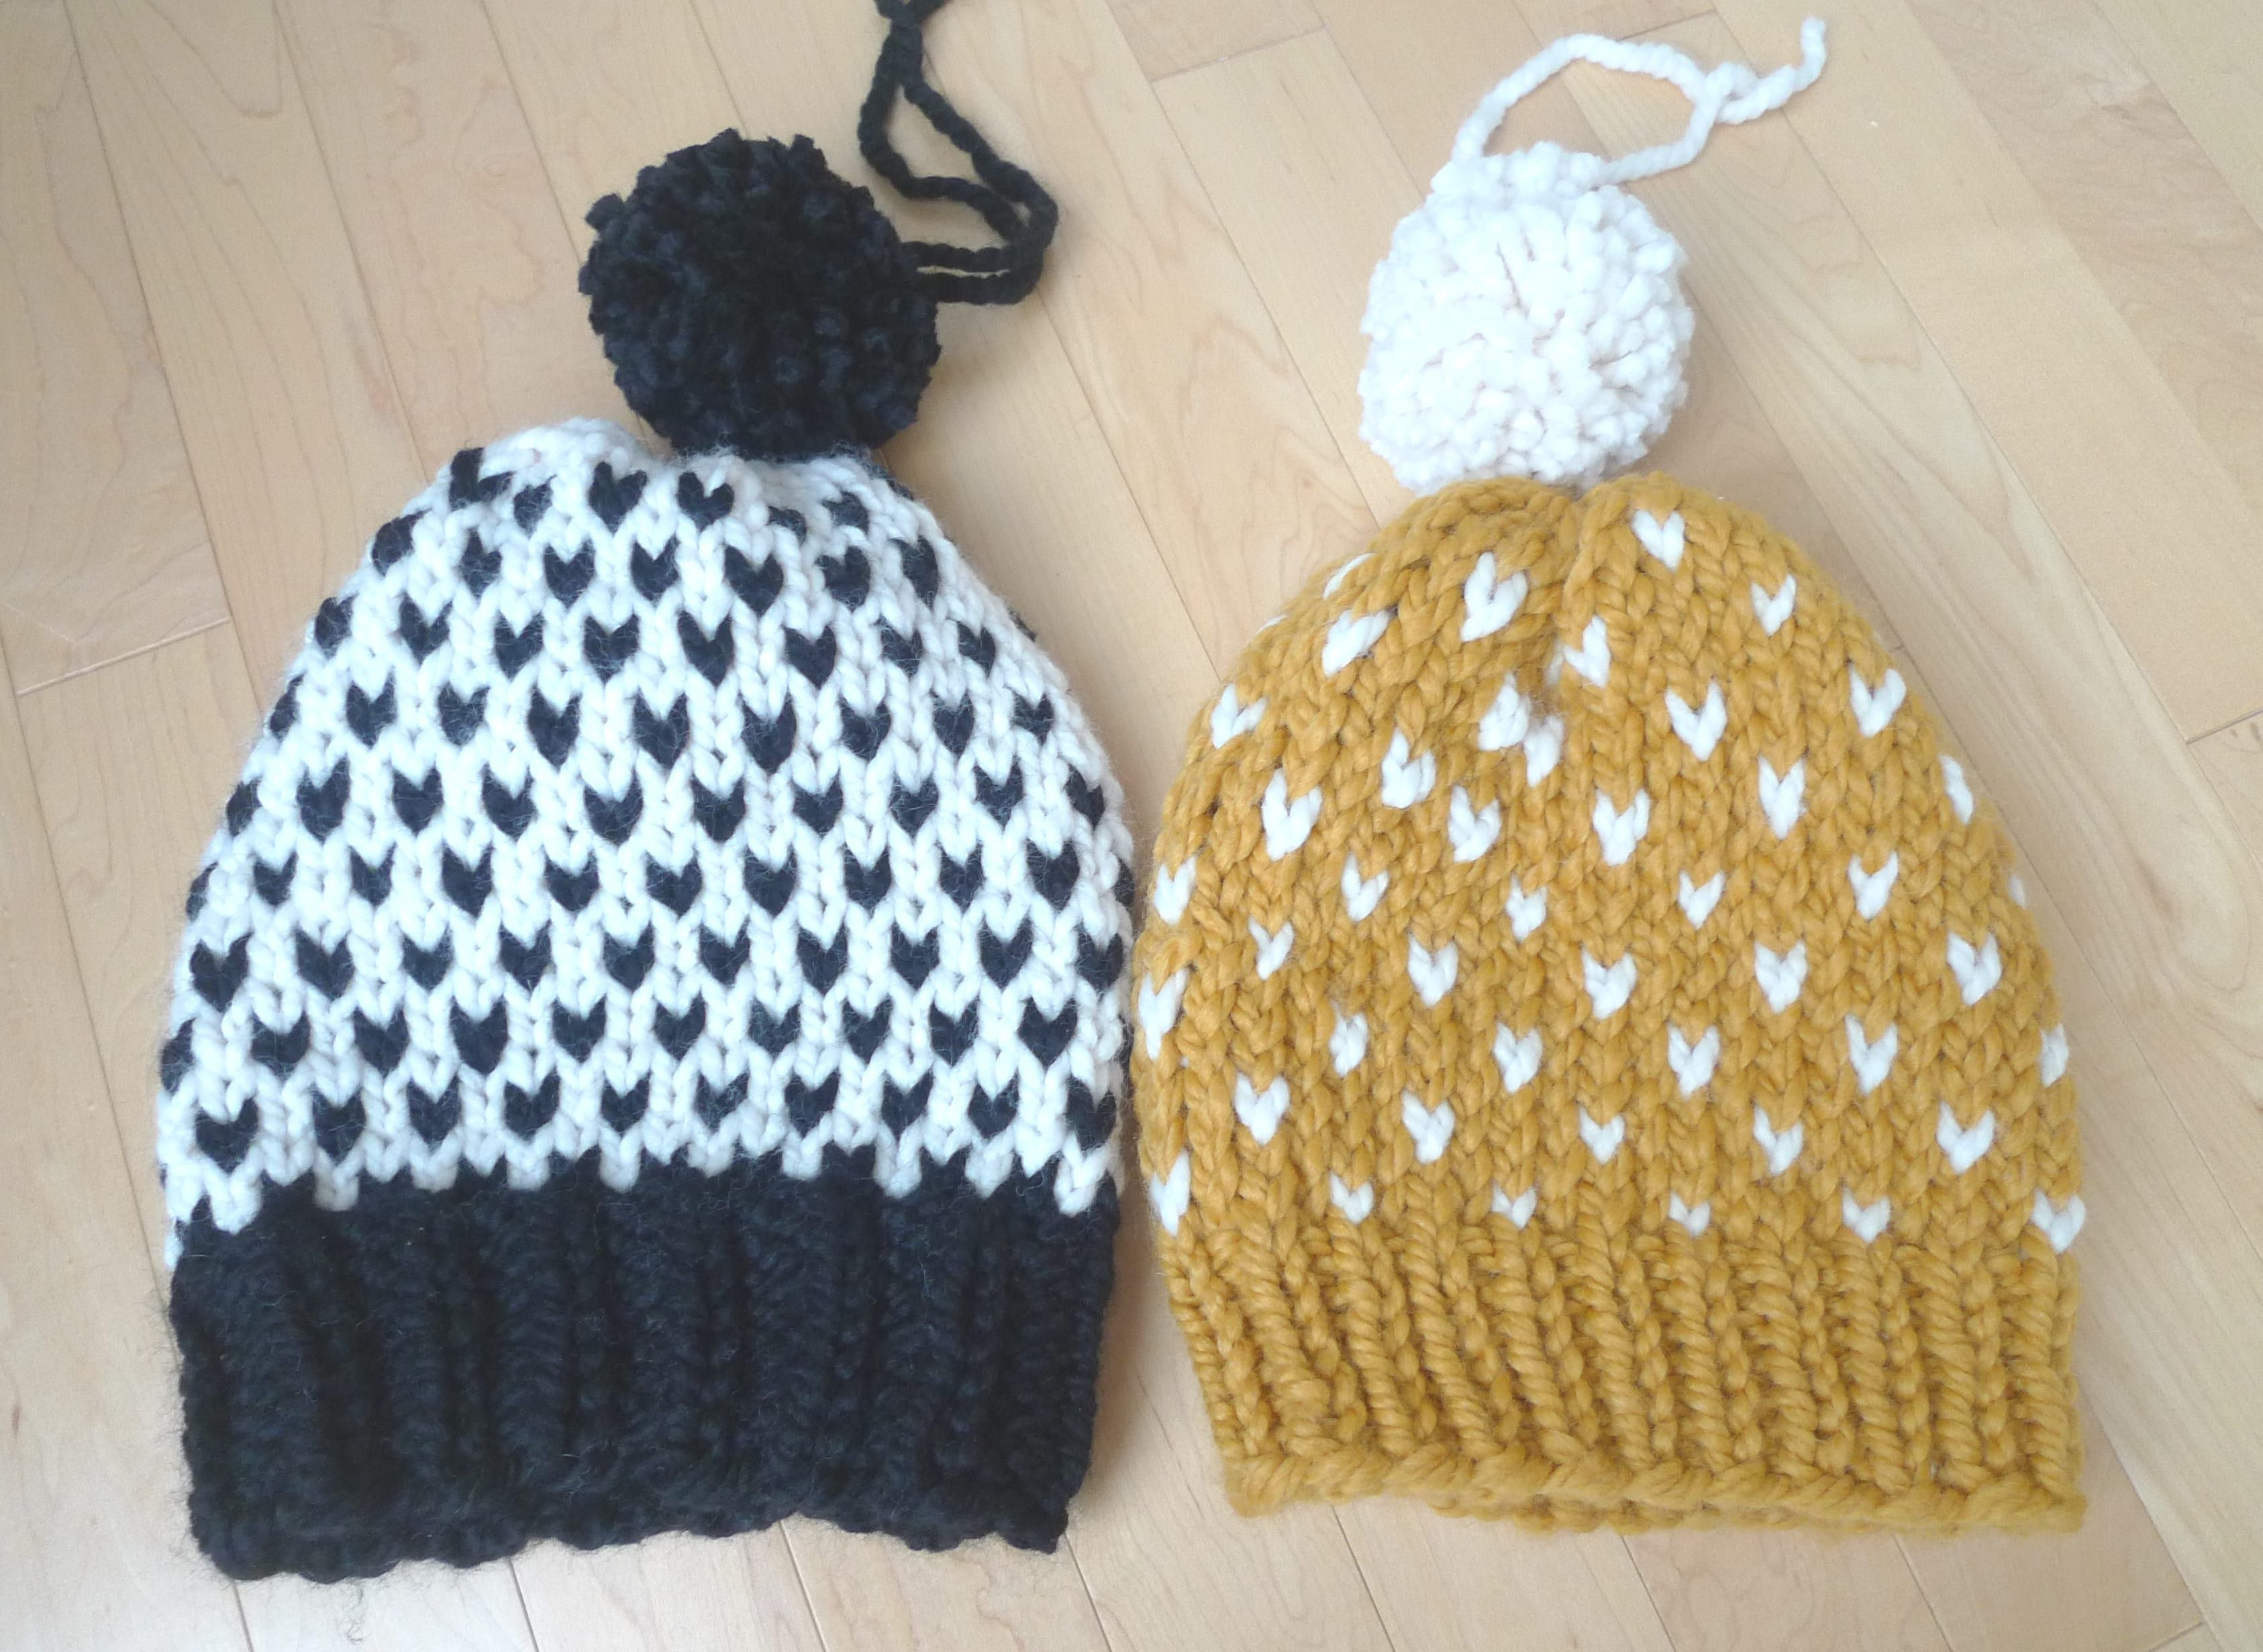 Knitted Fair Isle Hats | textiles: knitting projects and resources ...